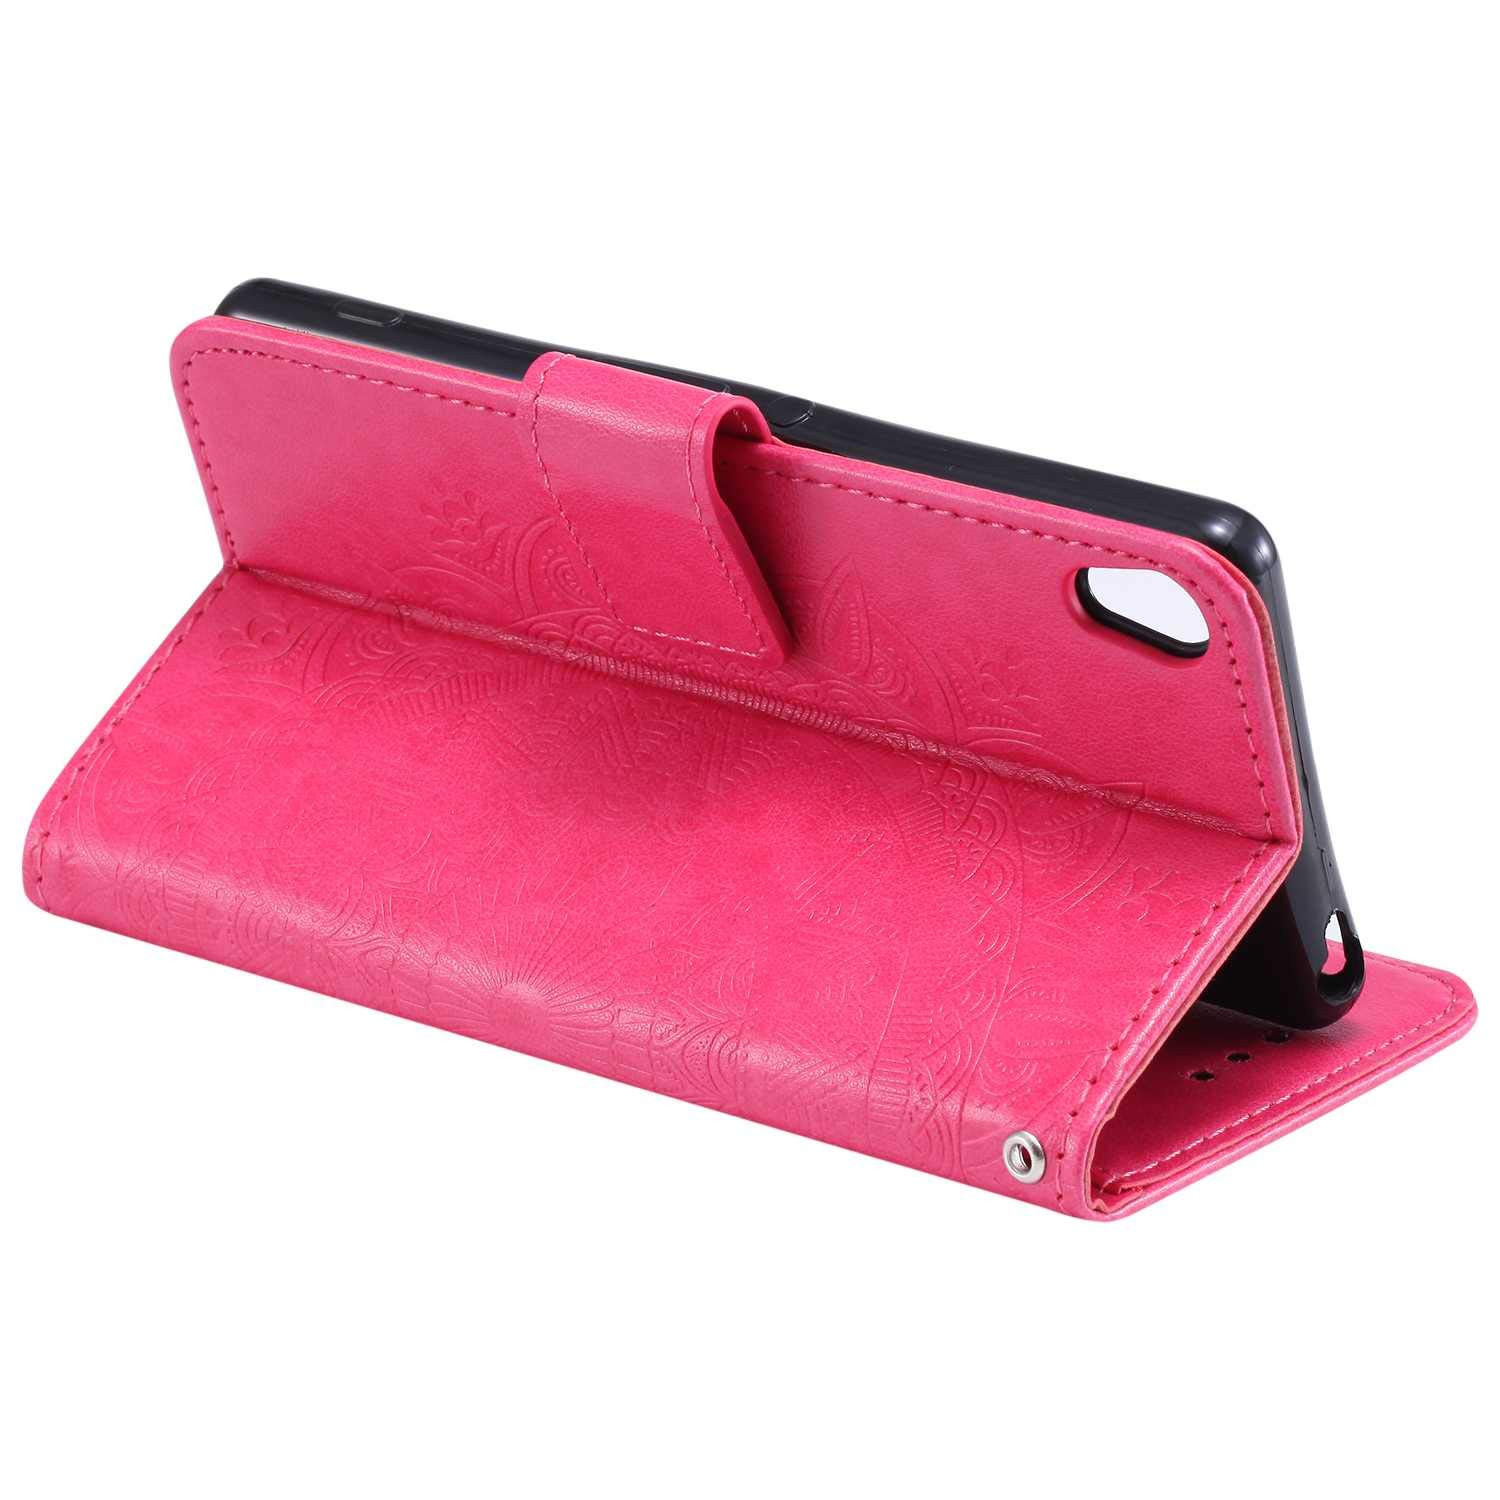 Premium Wallet Case with Sony Xperia XA Case Kickstand Function Card Slots The Grafu Leather Case Flip Notebook Cover for Sony Xperia XA Green